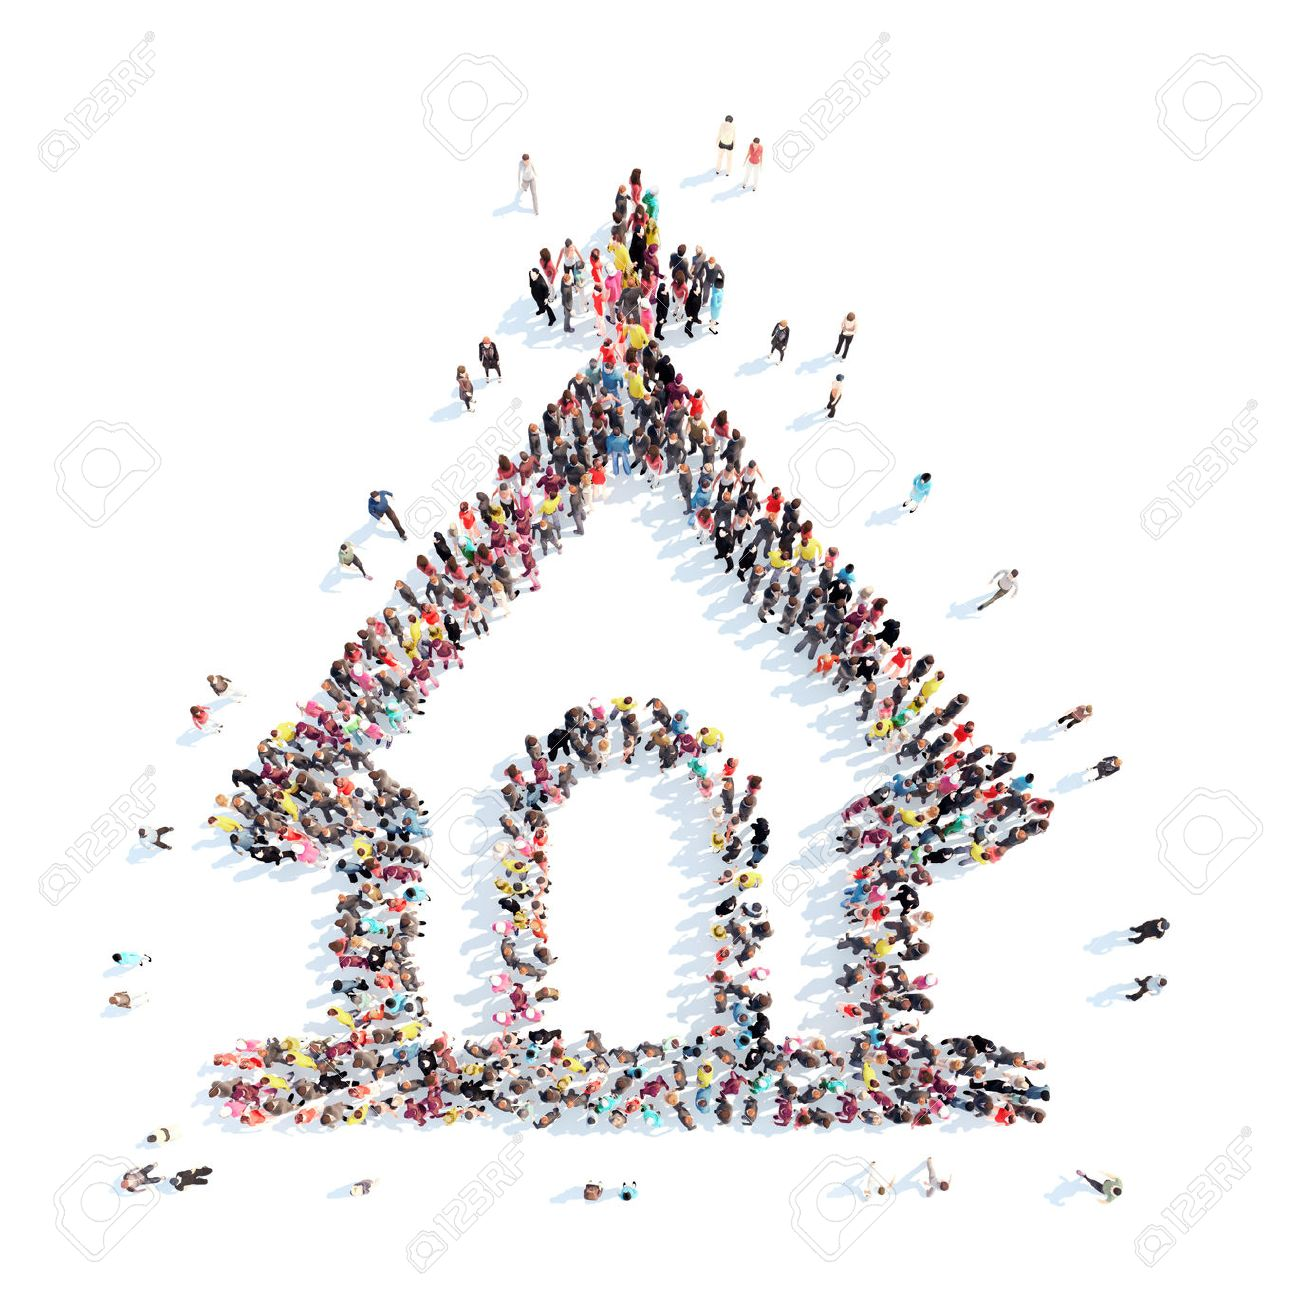 A large group of people in the shape of the church. Isolated, white background. - 41243974